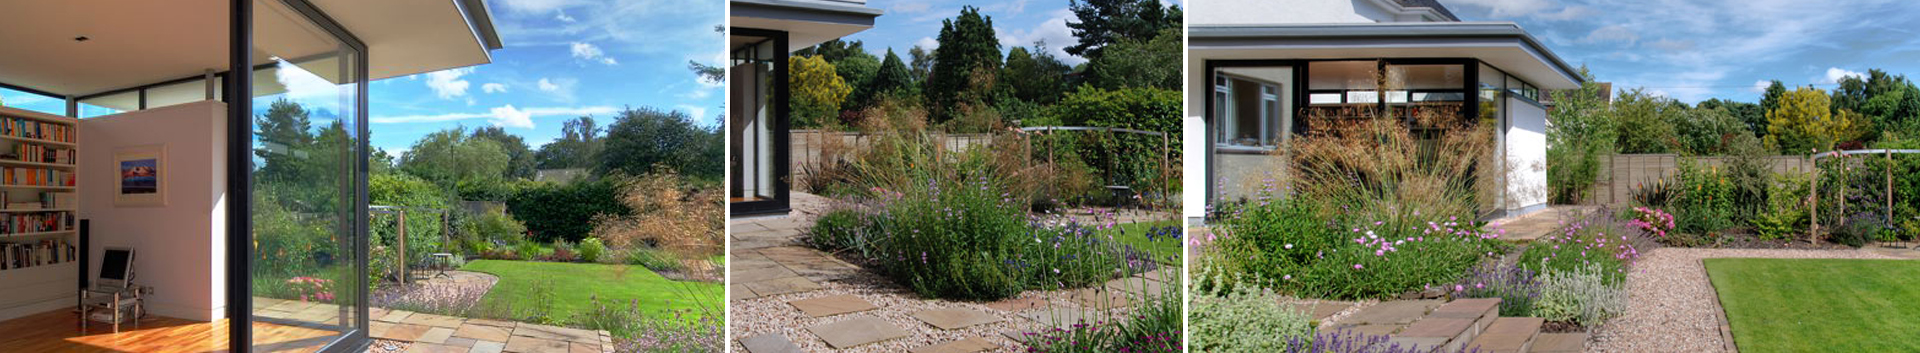 Our Garden Design service - We developed a contemporary garden design to compliment a new extension